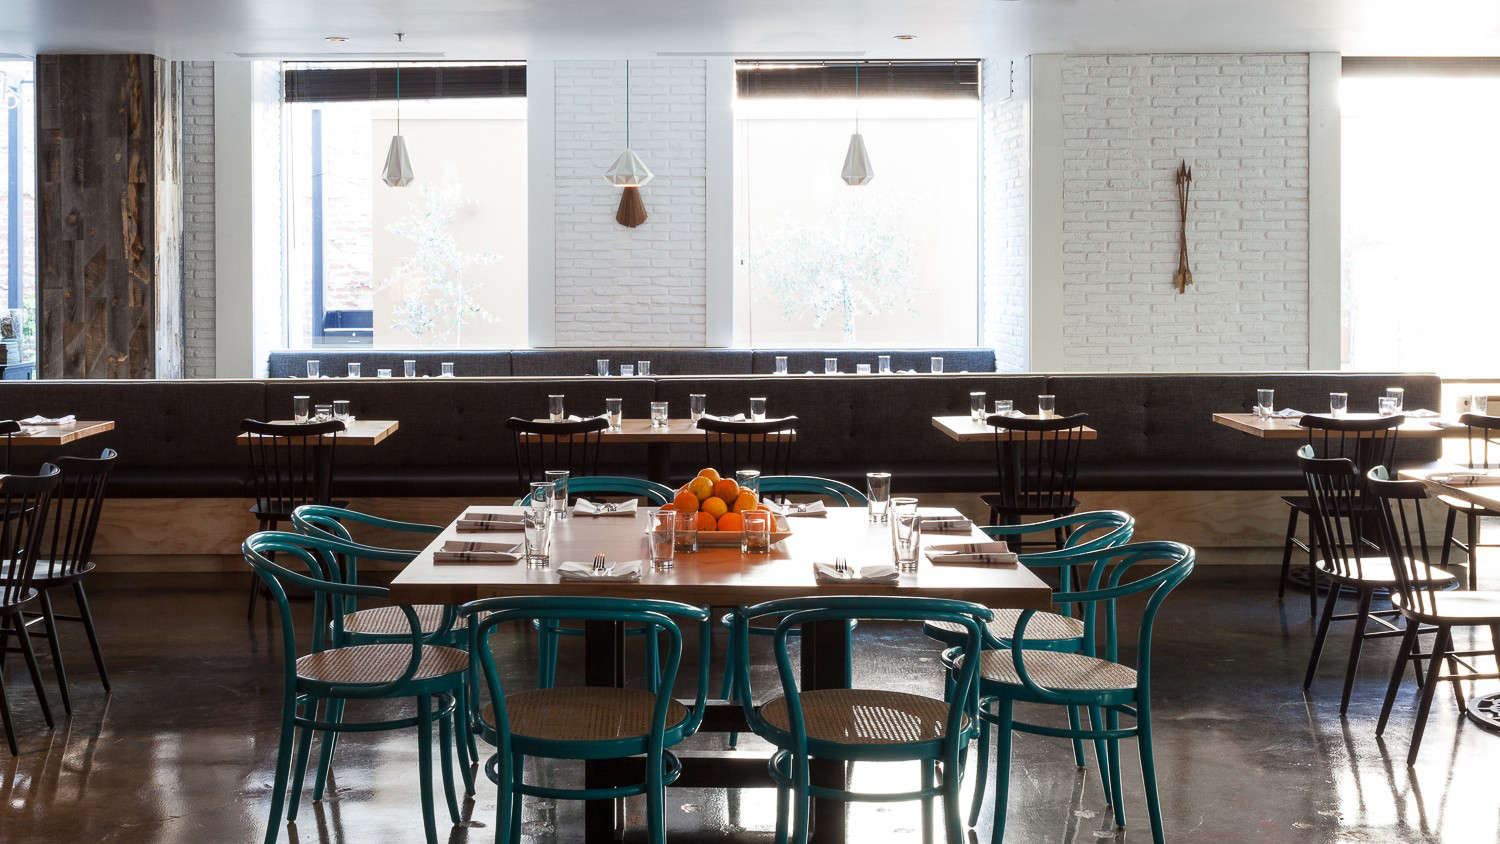 Hock Farm Restaurant with Turquoise Bentwood Chairs and White Painted Brick Walls